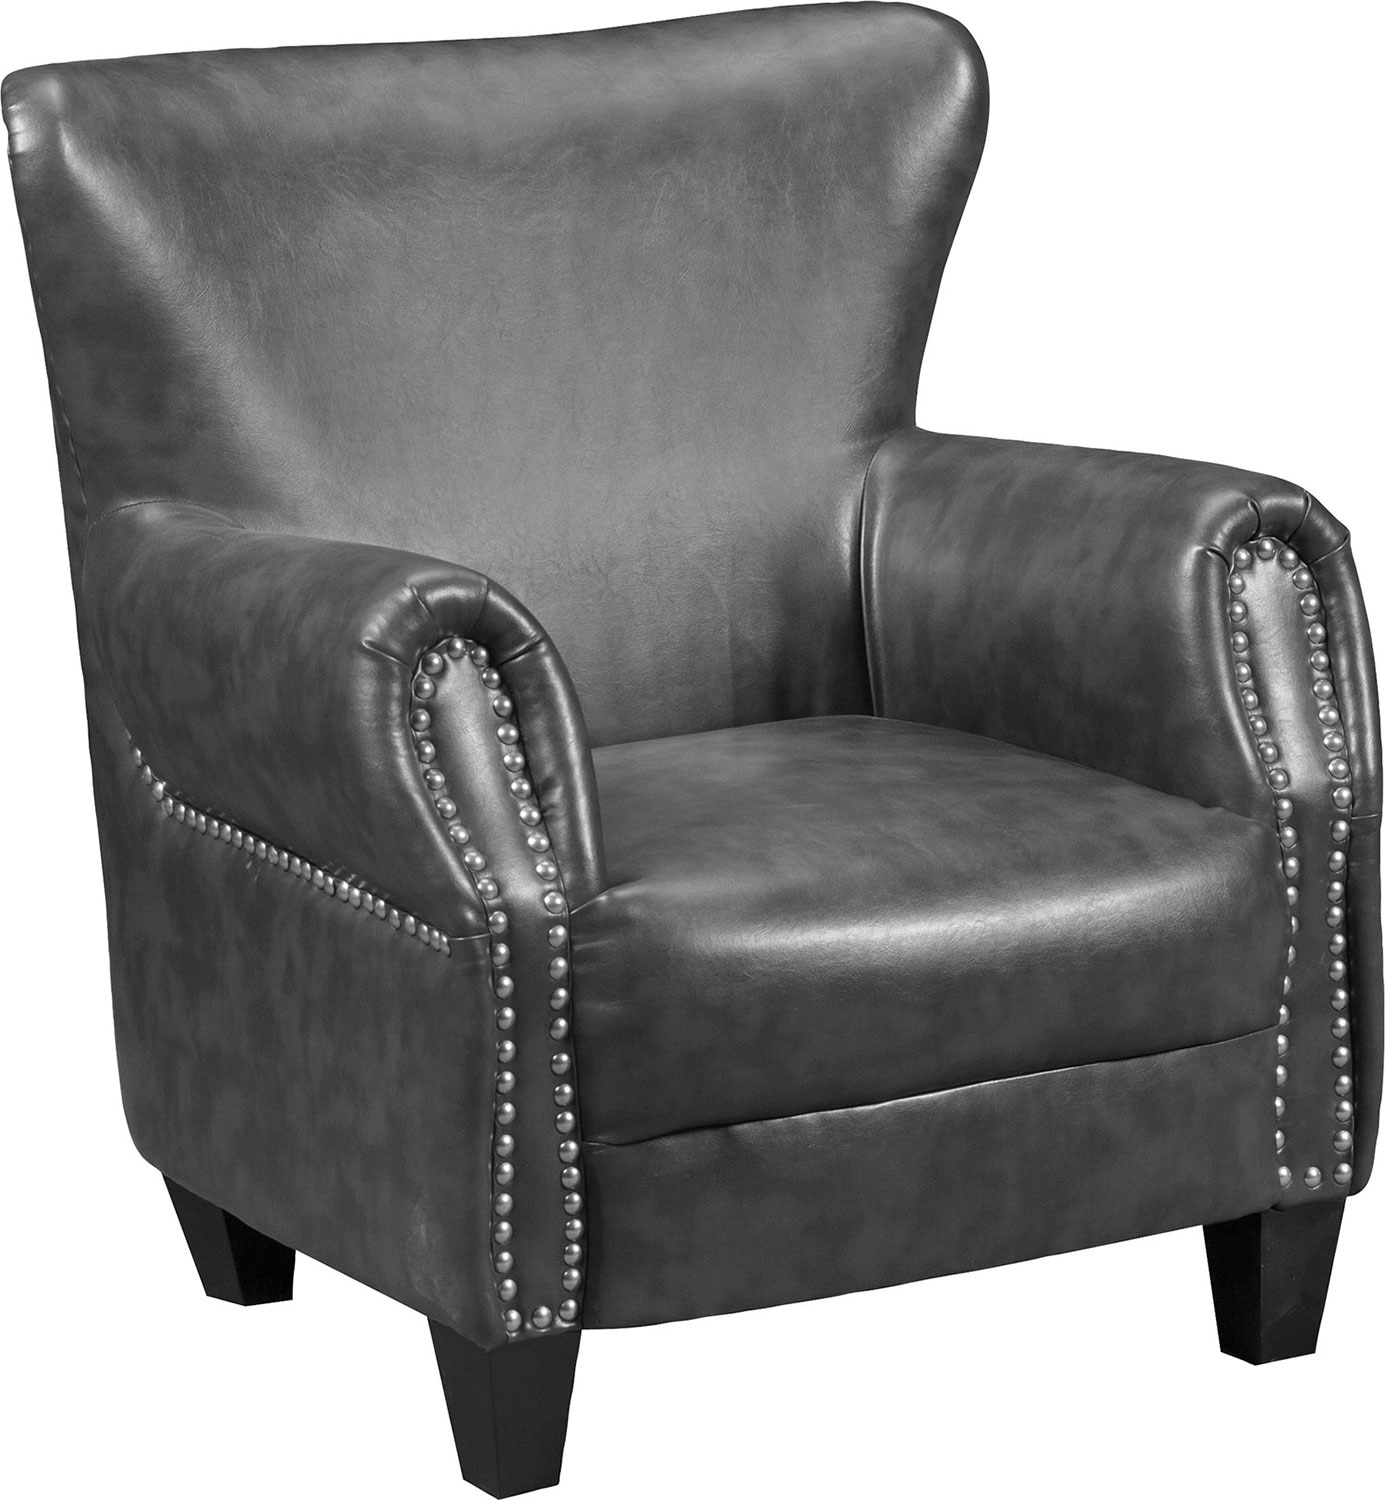 Flint Bonded Leather Accent Chair - Grey